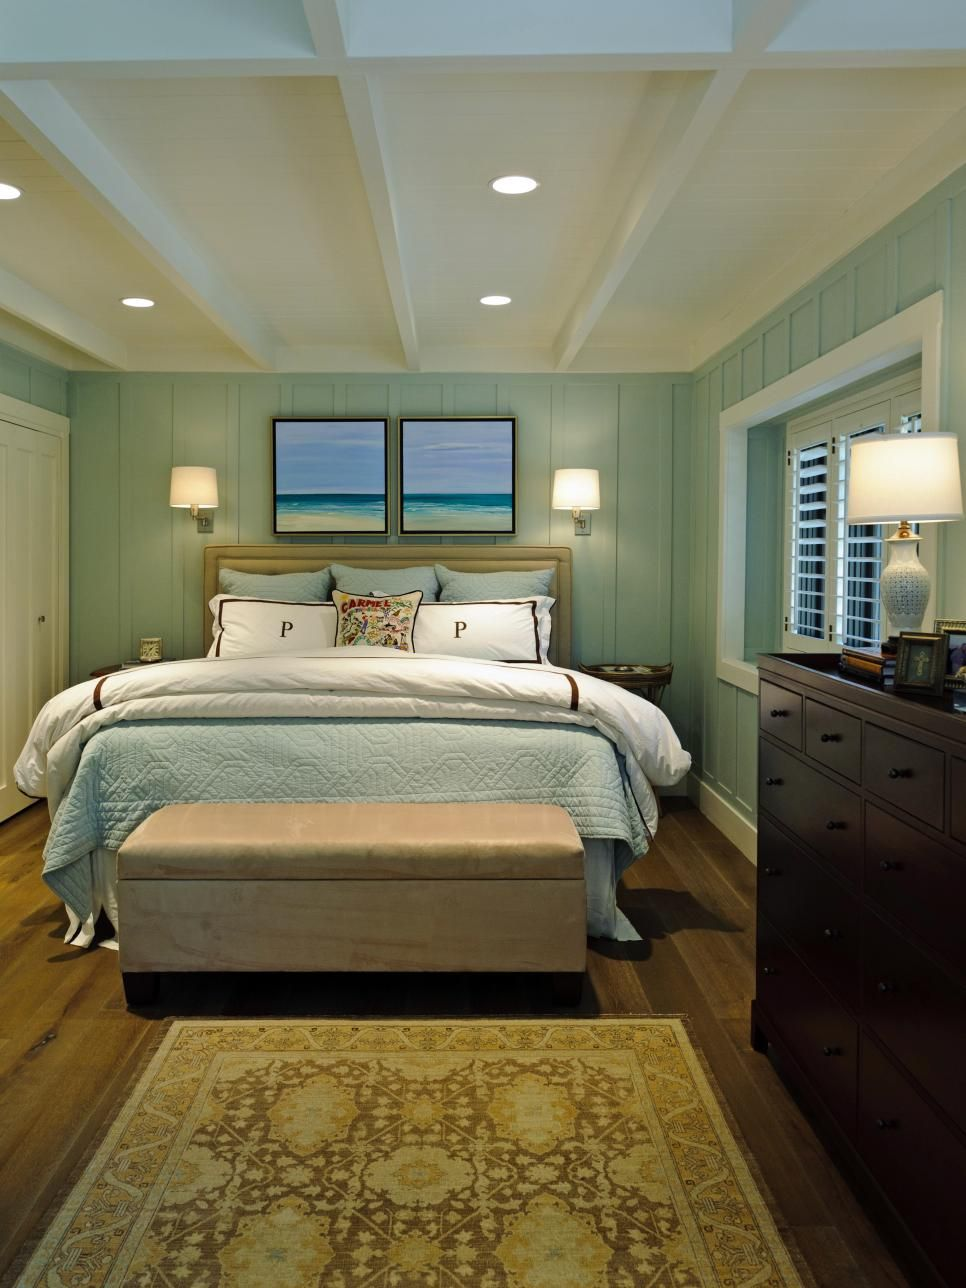 Beach Style Bedroom Designs Walls The Soft Hue Of Sea Mist And A Pair Of Tranquil Tropical